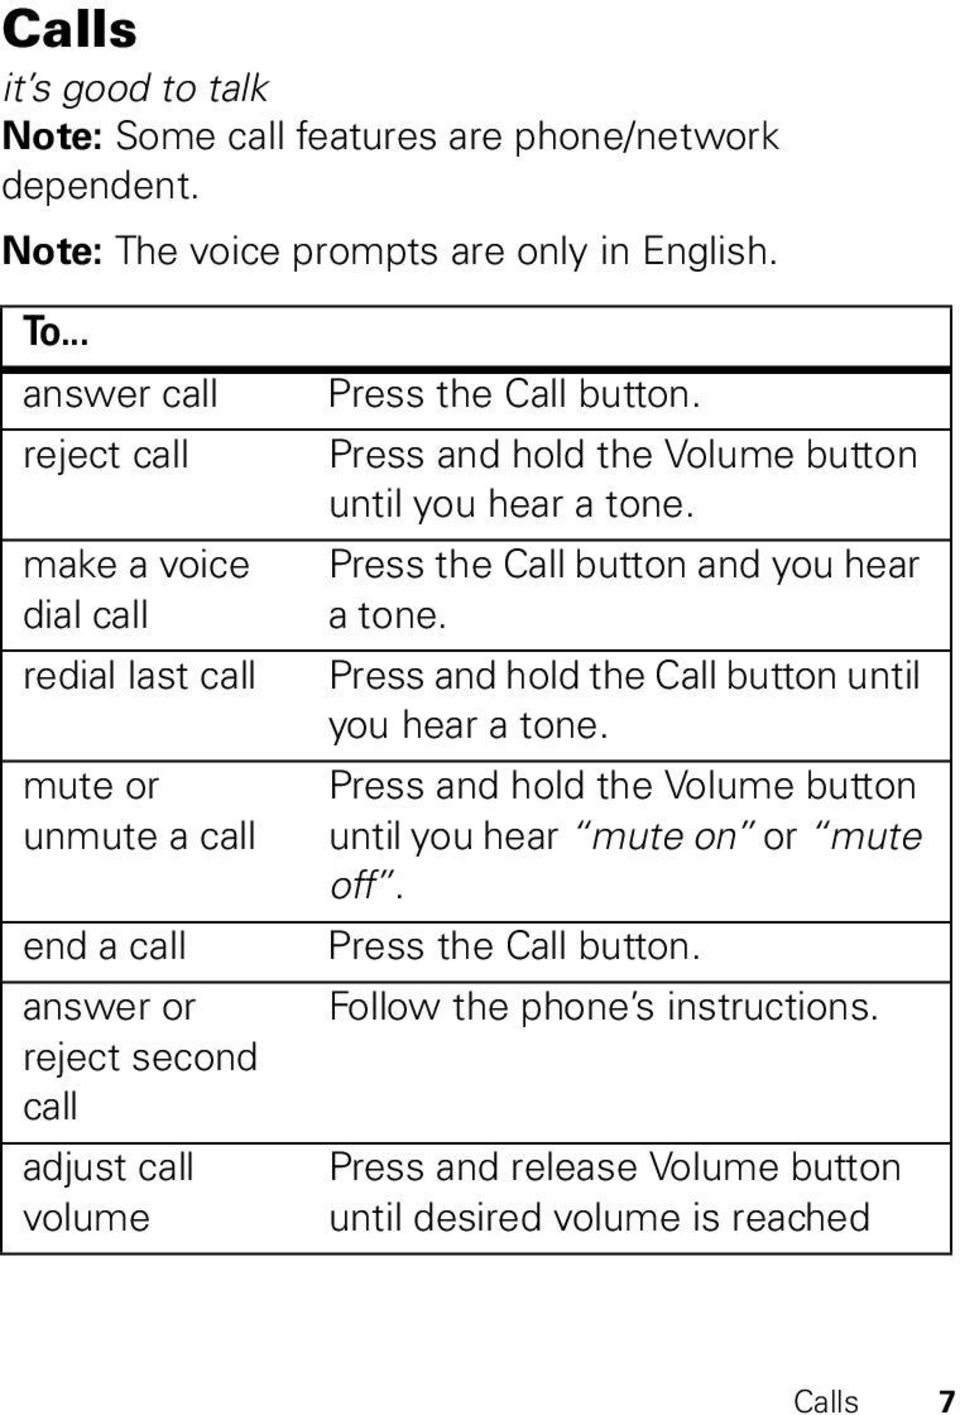 Call button. Press and hold the Volume button until you hear a tone. Press the Call button and you hear a tone.